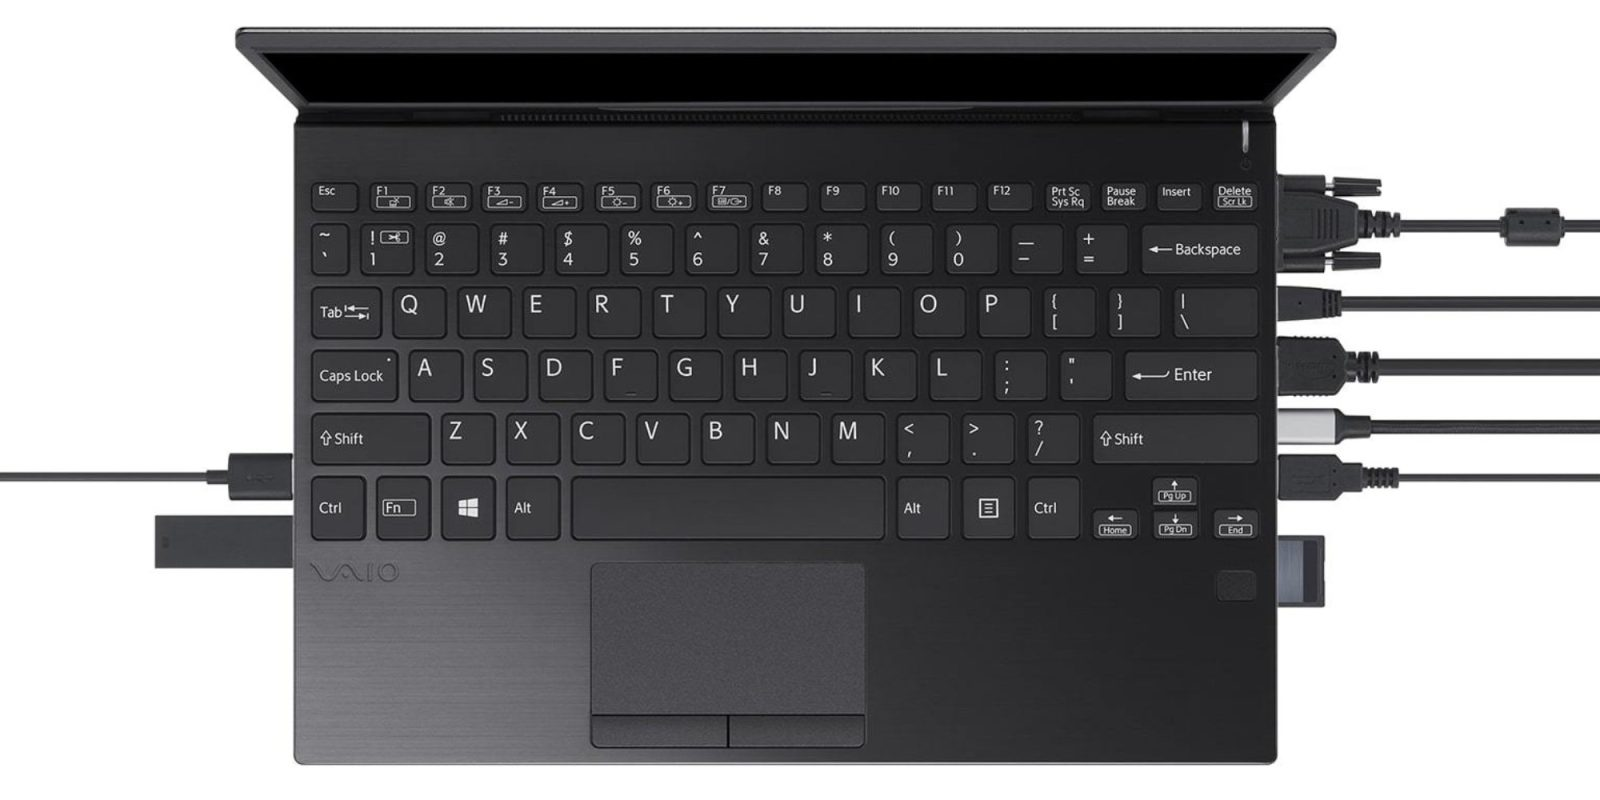 New Sony VAIO confirms laptops shouldn't require dongles